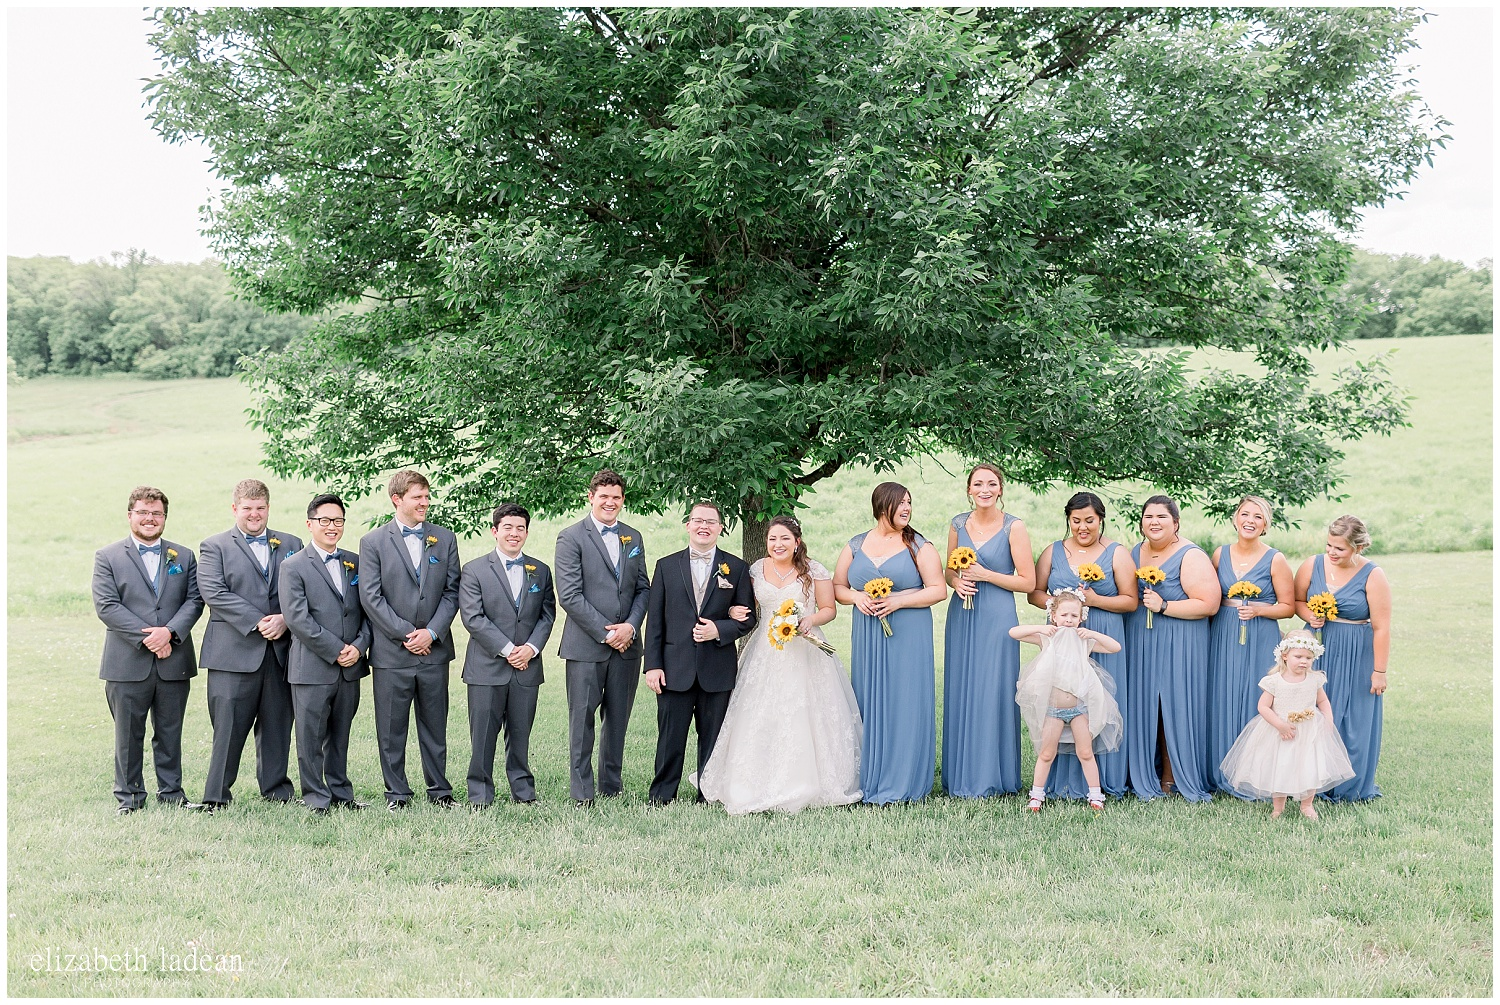 -behind-the-scenes-of-a-wedding-photographer-2018-elizabeth-ladean-photography-photo_3430.jpg